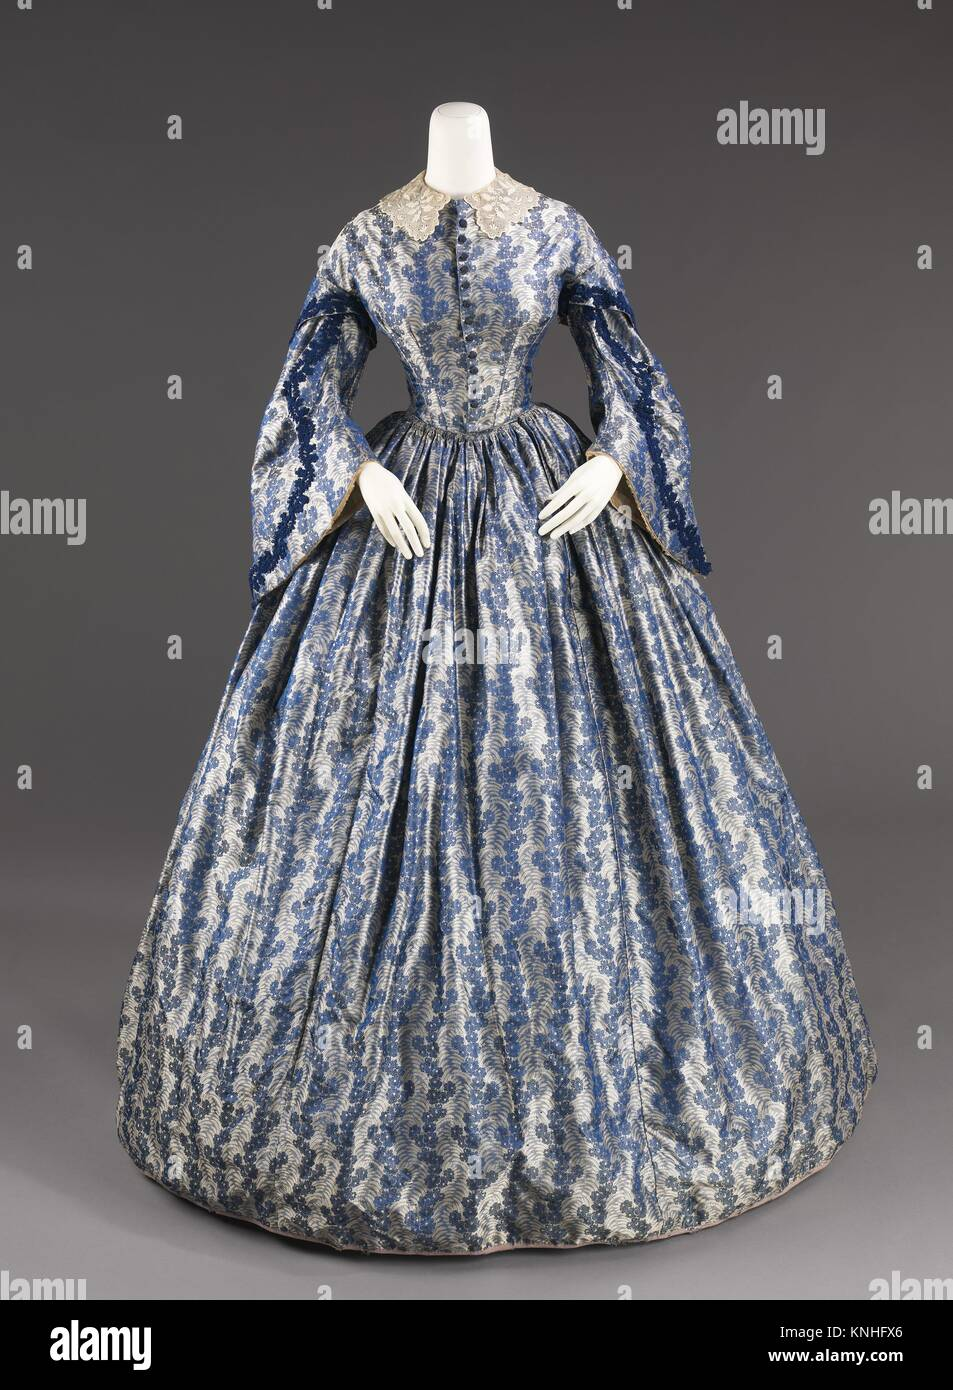 1860; Culture American; Medium silk cotton; Credit Line Brooklyn Museum Costume Collection at The Metropolitan Museum of & Wedding dress. Date: ca. 1860; Culture: American; Medium: silk Stock ...